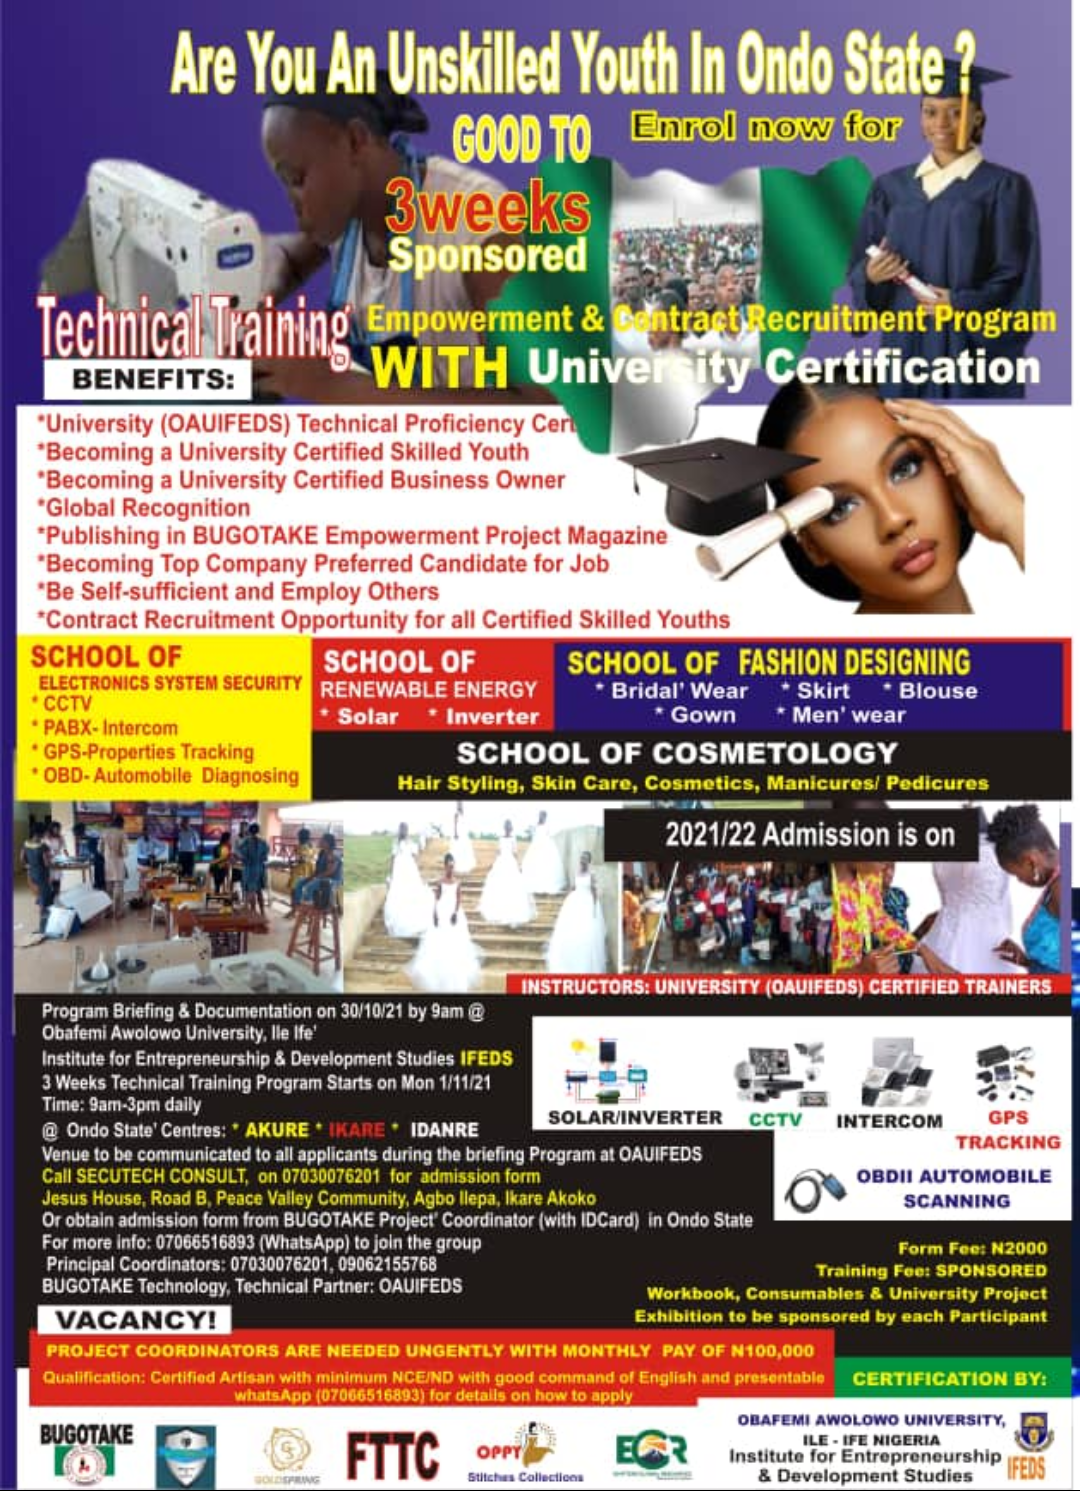 Are you an unskilled youth of Ondo state?